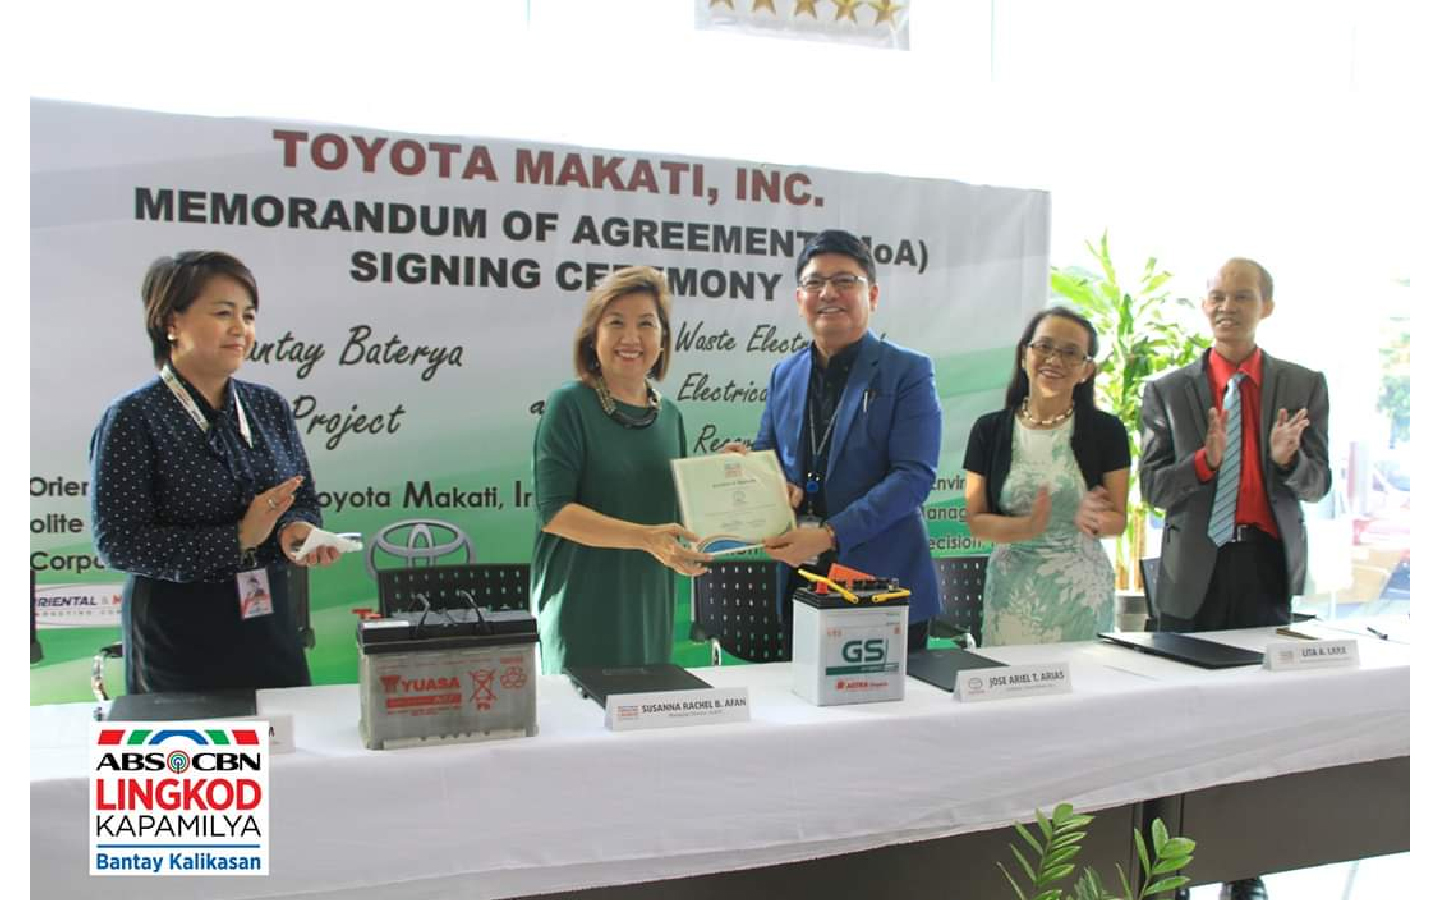 Toyota disposes of ULAB, e-waste through Bantay Kalikasan